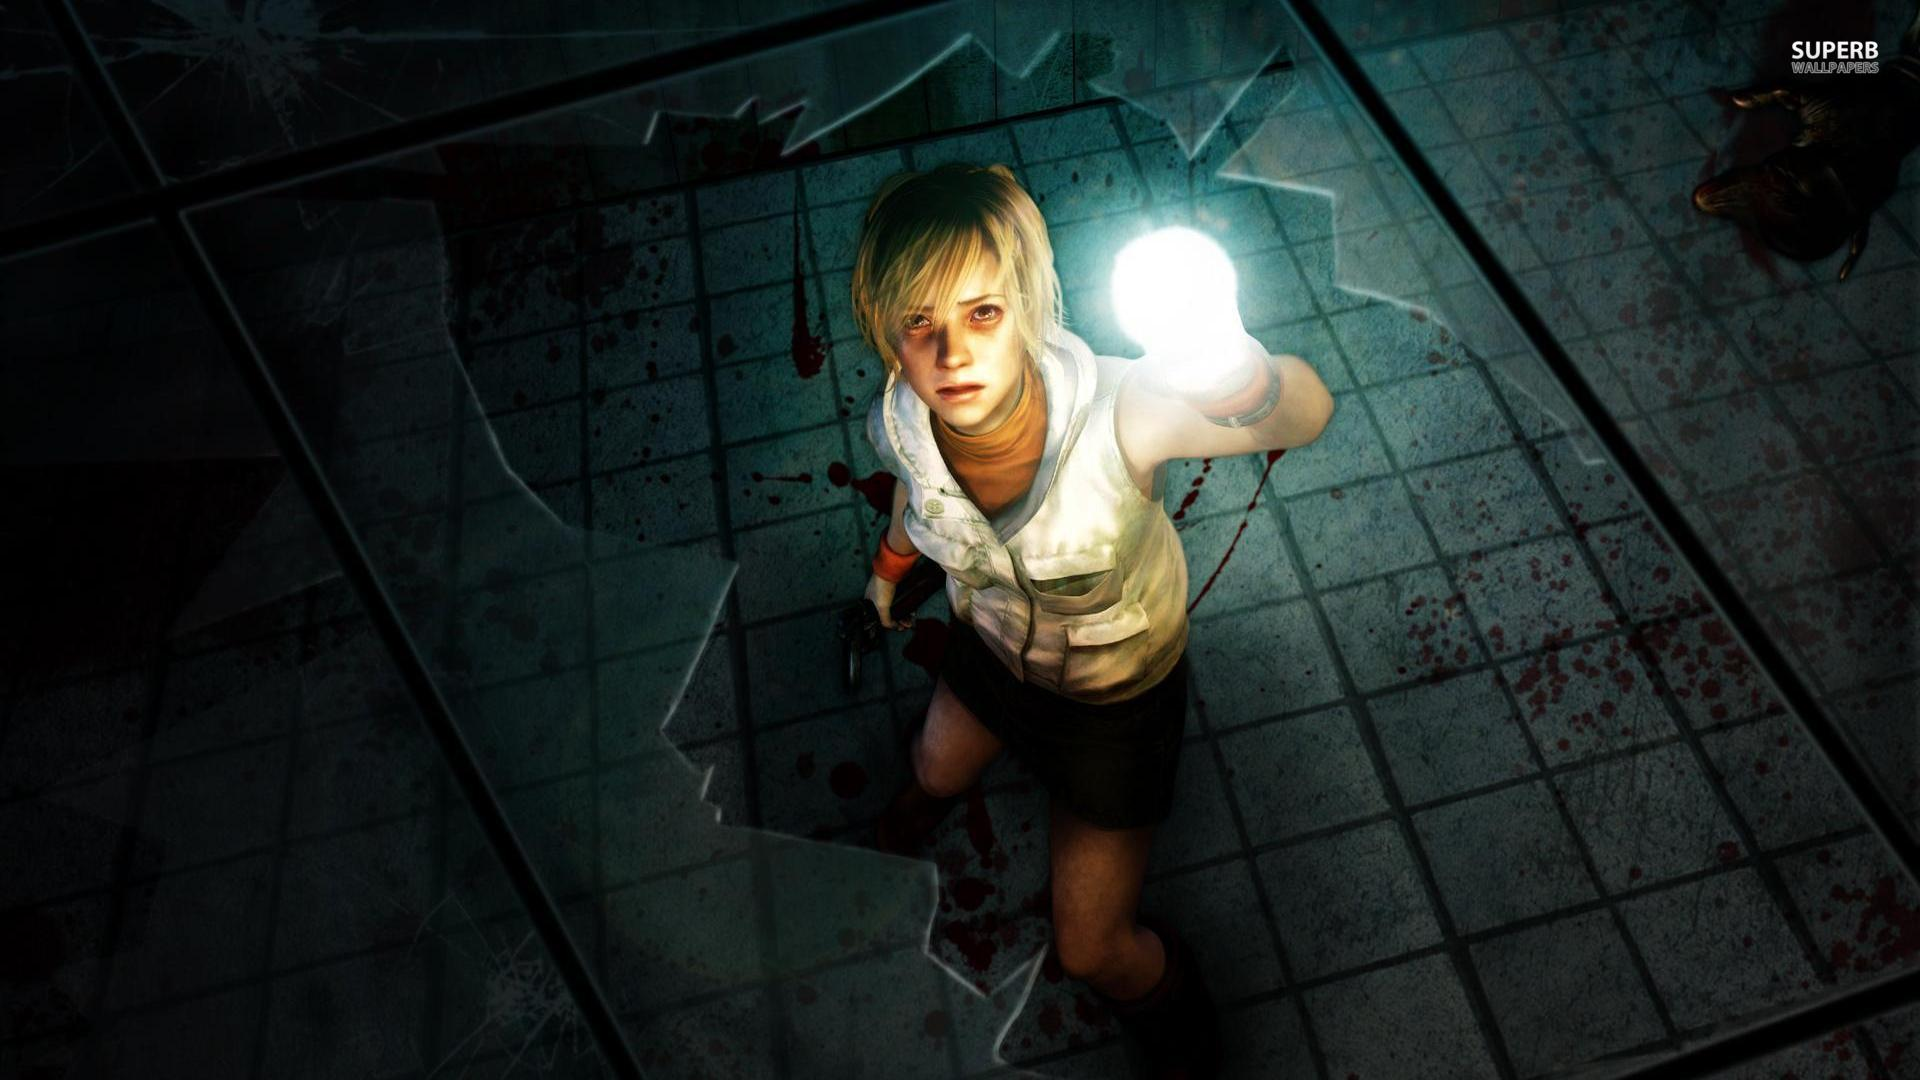 Horror Hd Wallpapers 1366x768 Silent Hill 3 Wallpapers Wallpaper Cave